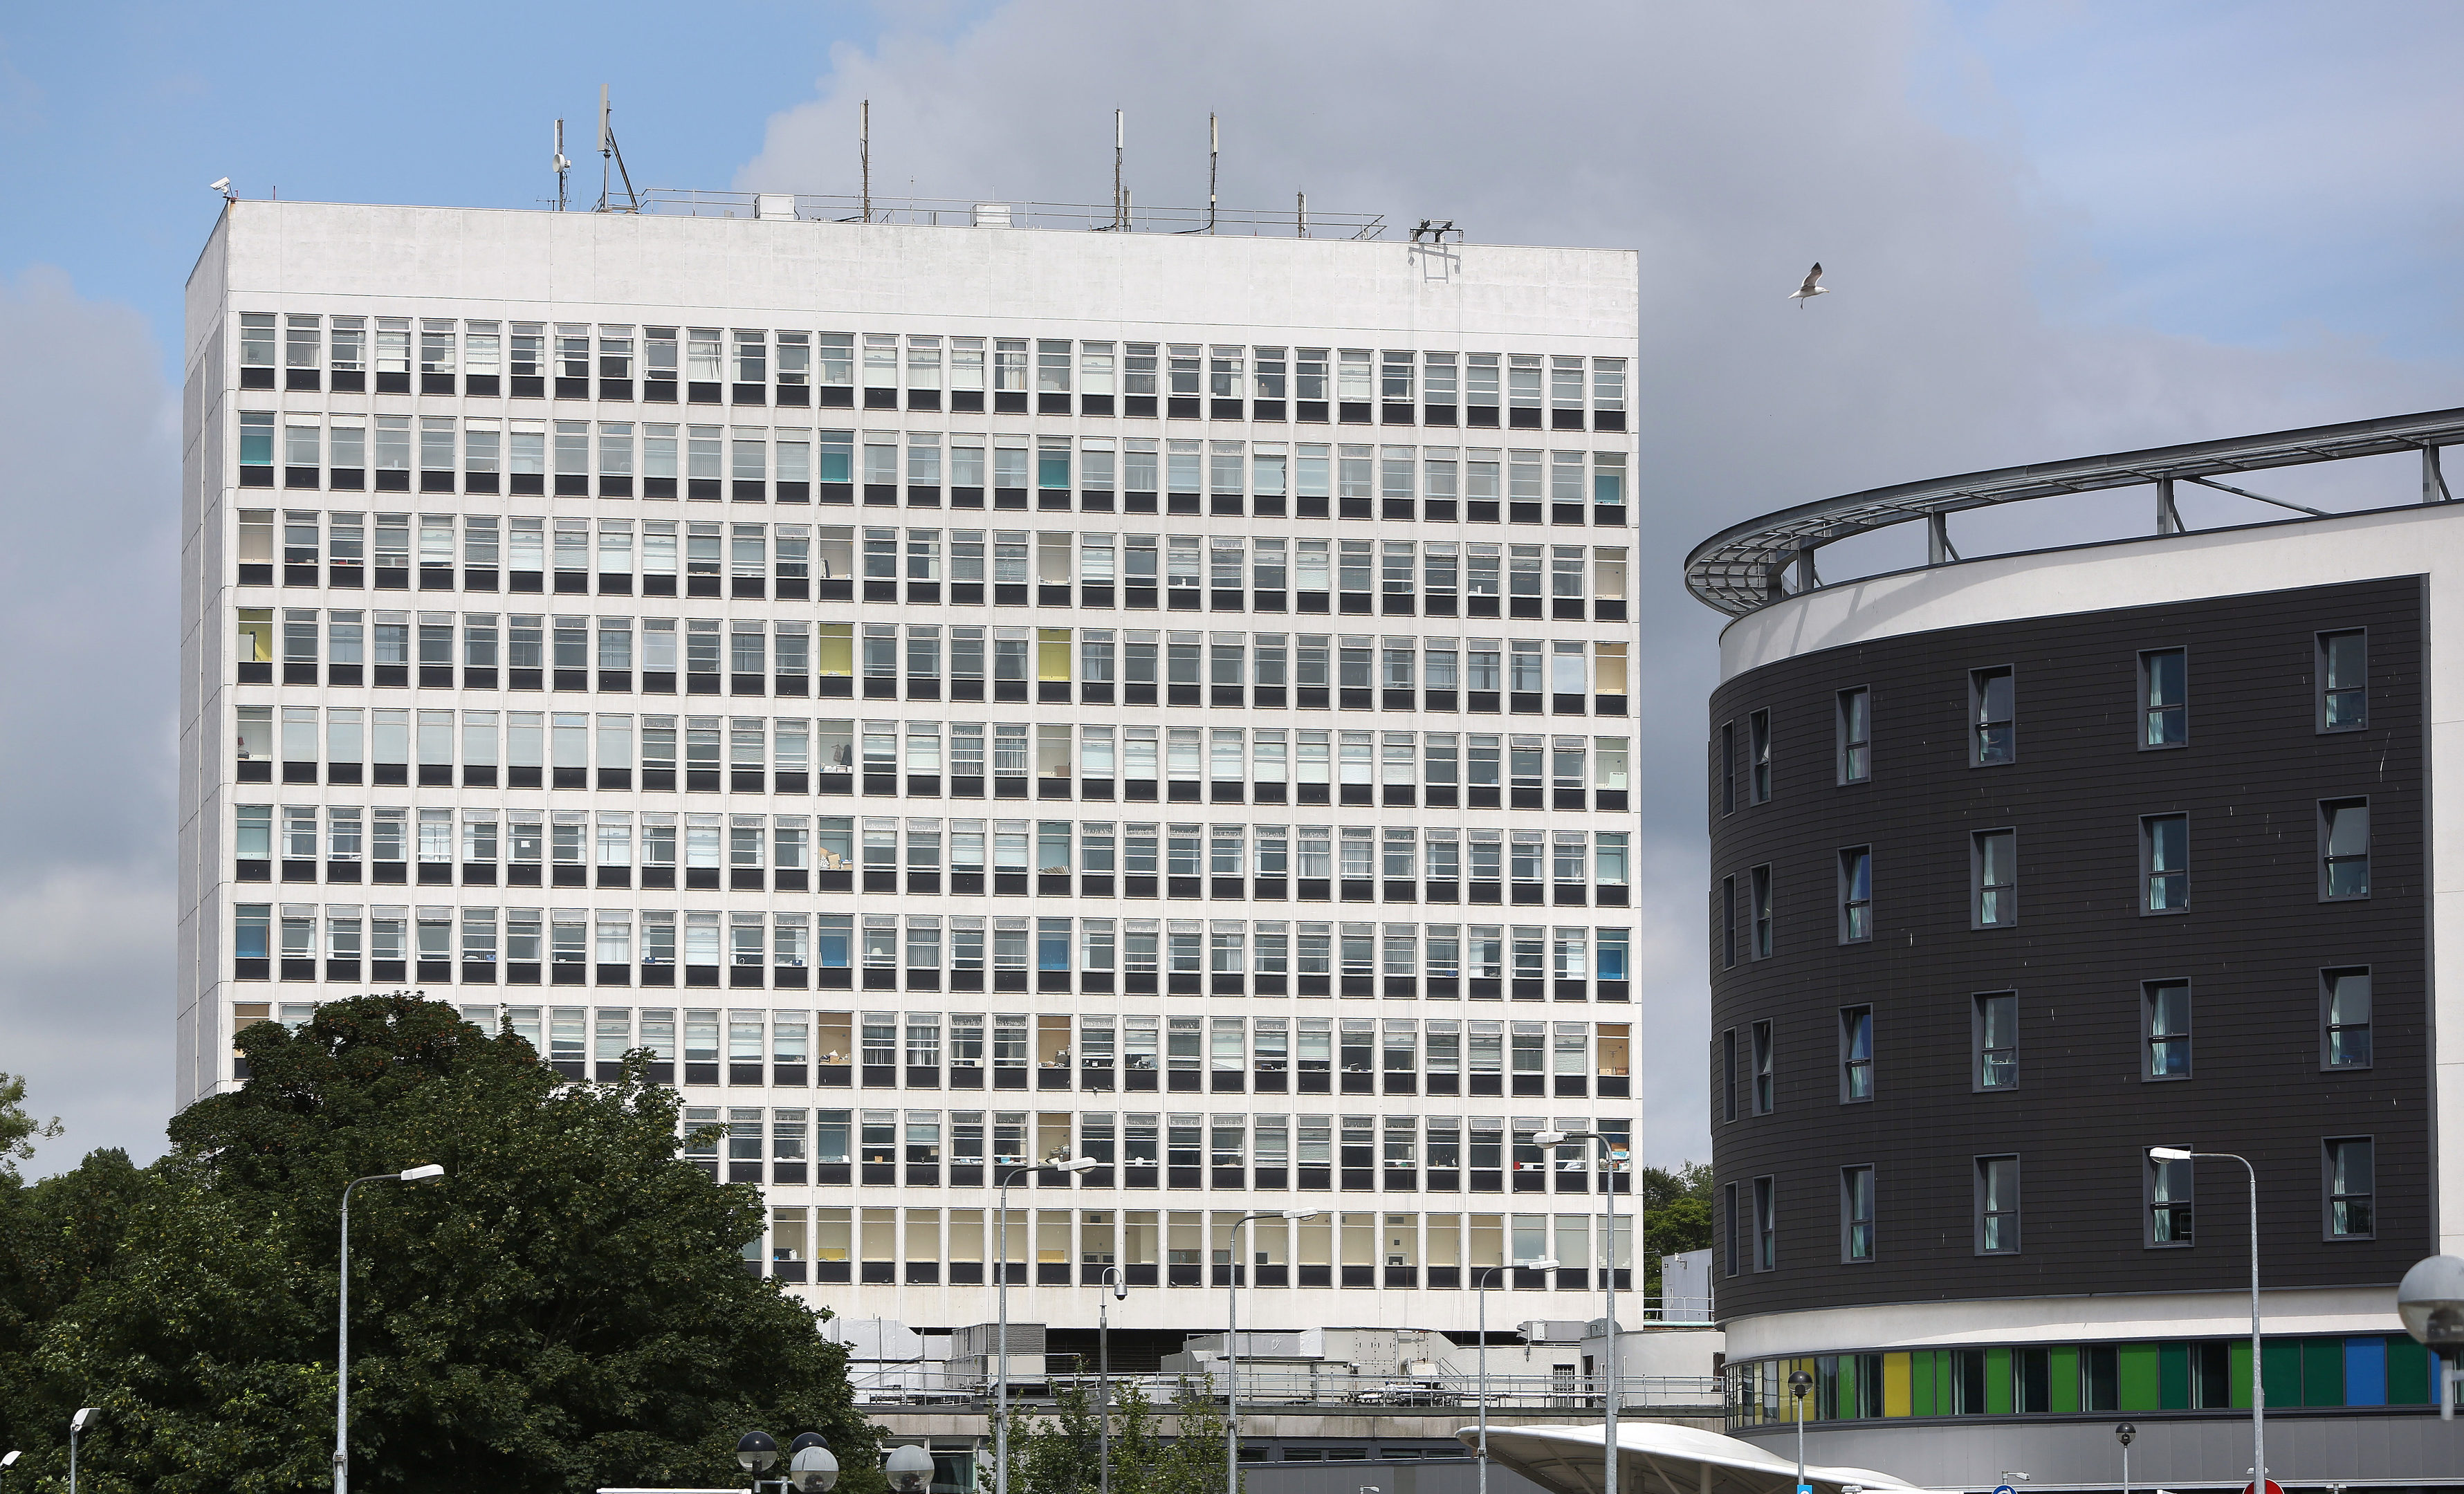 The tower block at Victoria Hospital